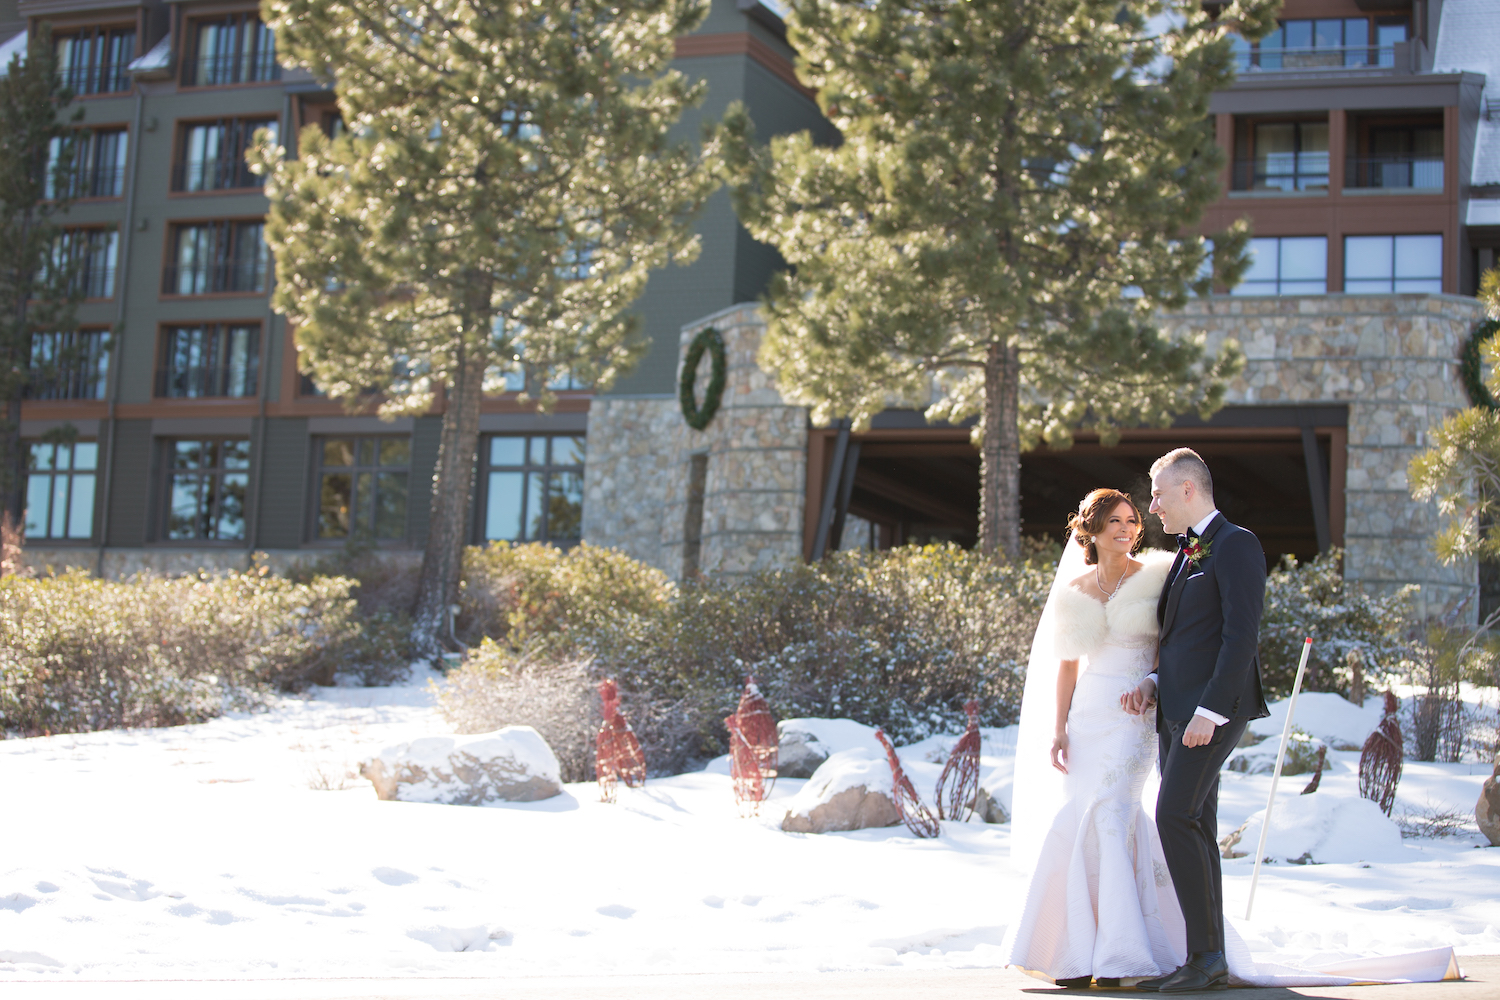 Winter Wedding Ritz Carlton Lake Tahoe | Sasha Photography05